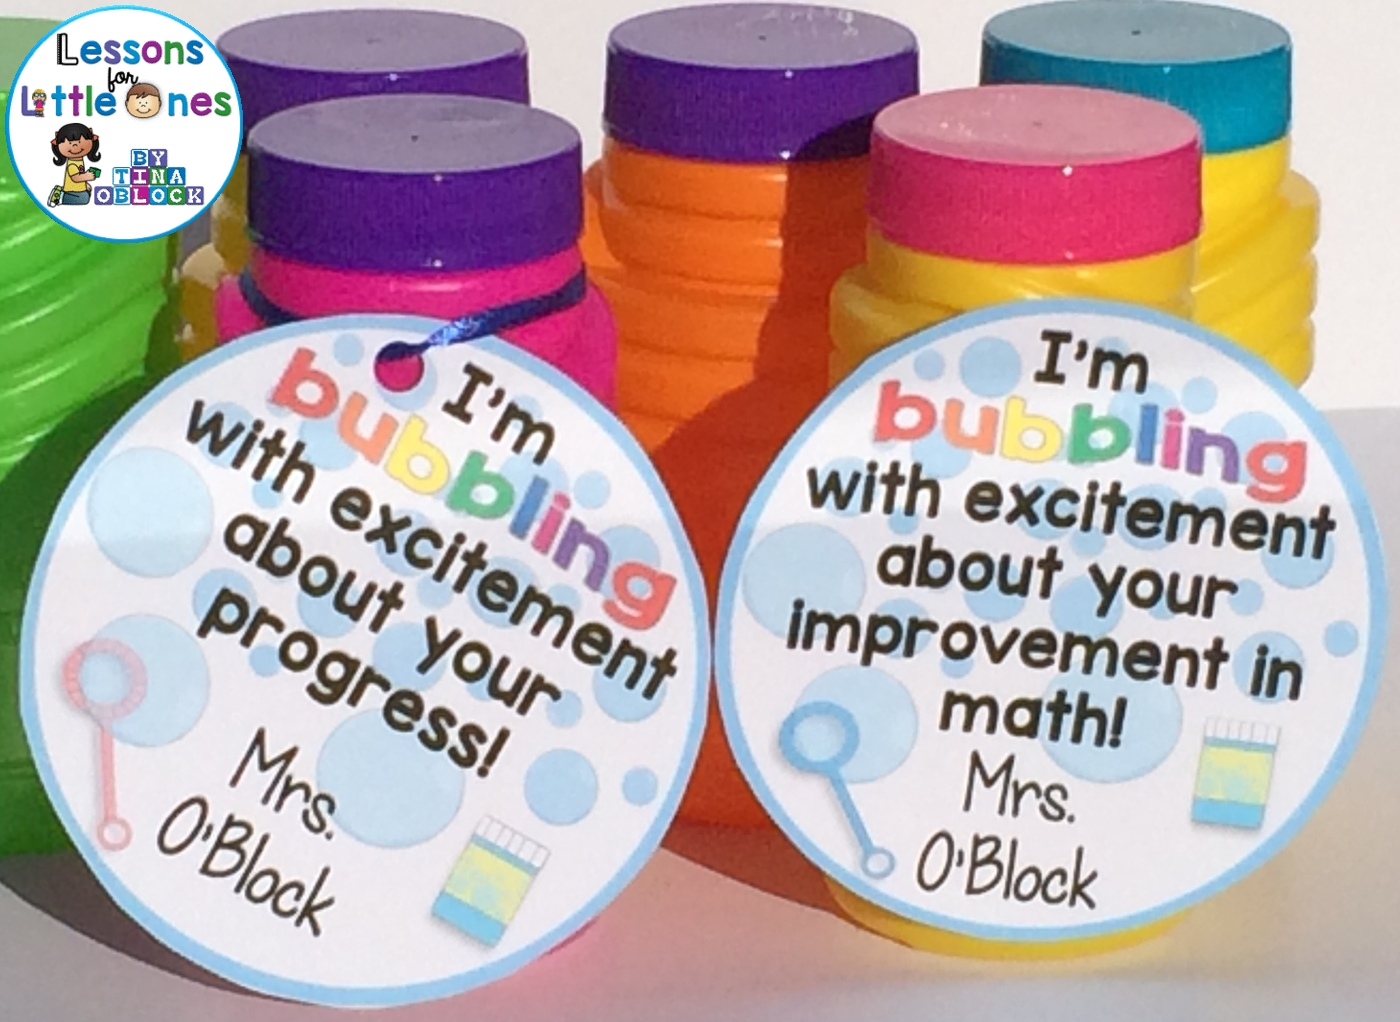 picture relating to Encouraging Notes for Students During Testing Printable identified as Pupil Present Designs Present Tags for Confident Reinforcement